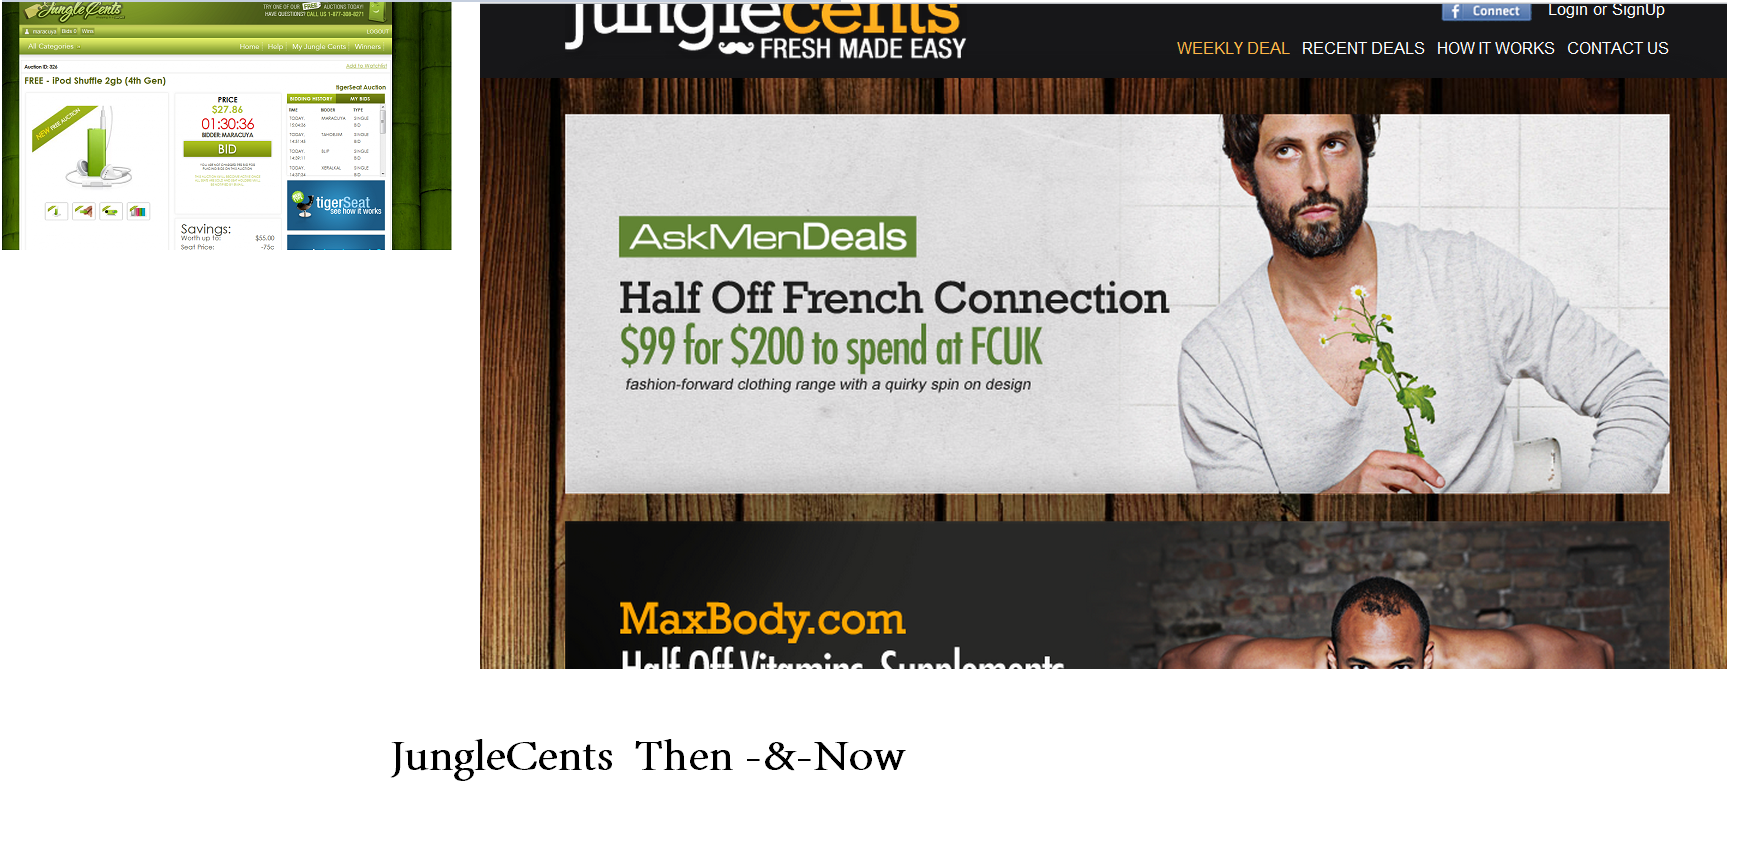 junglecents.com